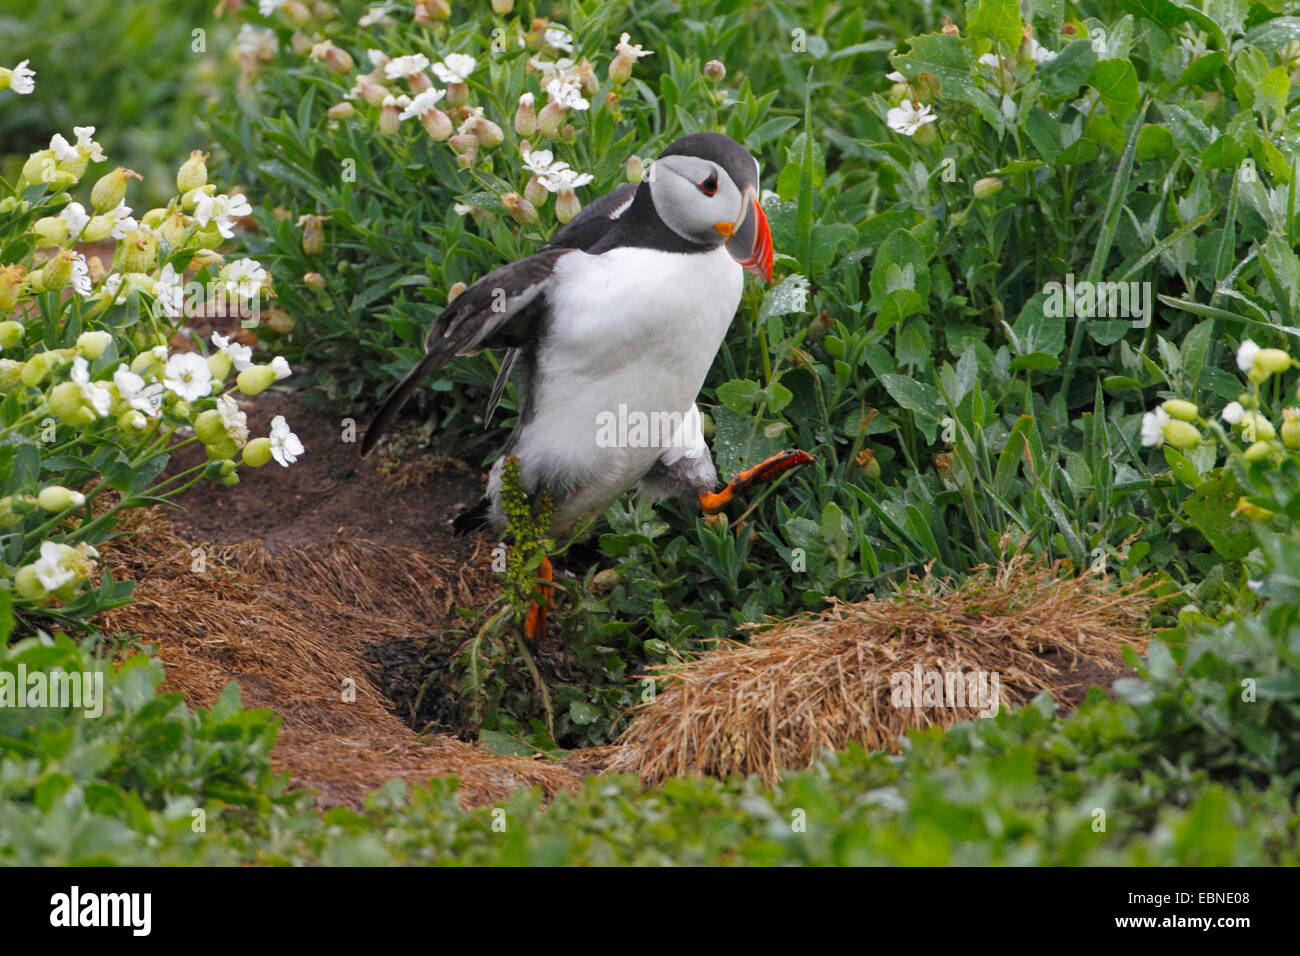 Atlantic puffin, Common puffin (Fratercula arctica), hopping over a hassock, United Kingdom, England, Farne Islands, - Stock Image